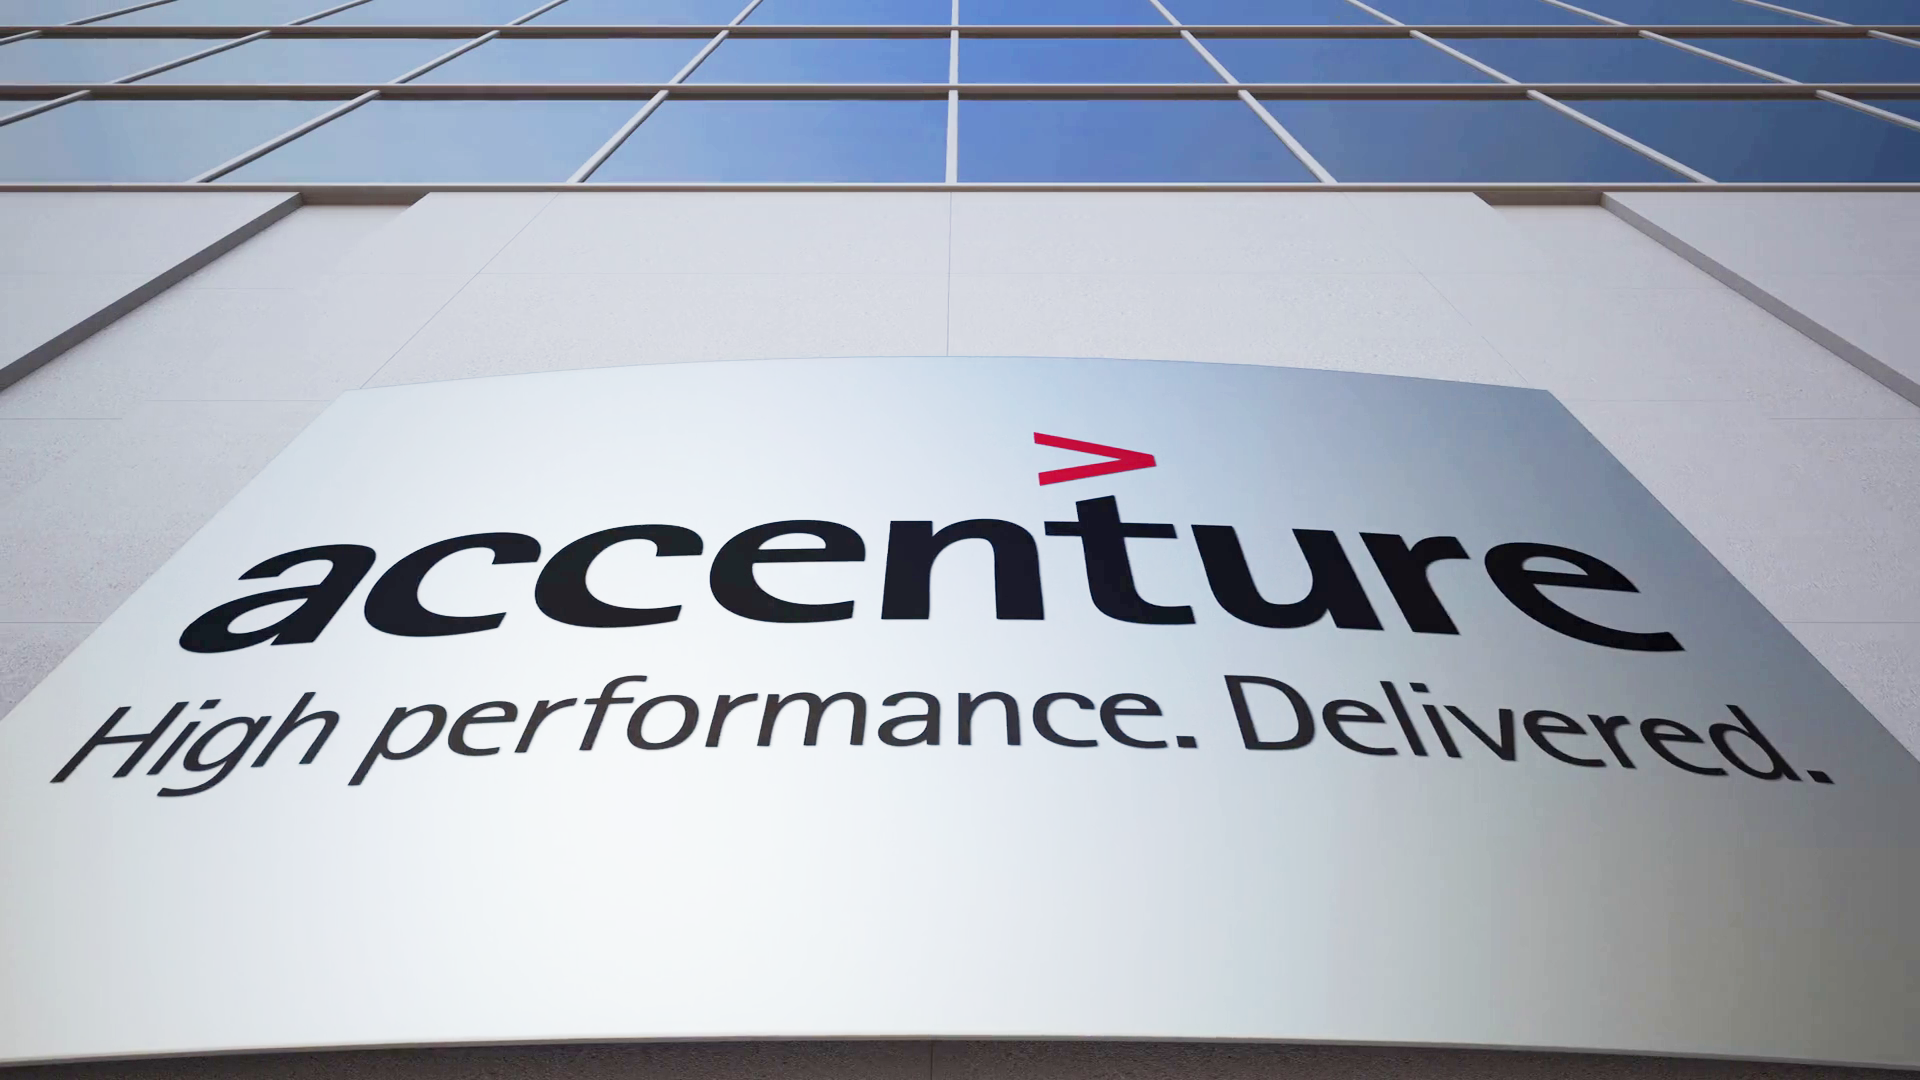 Accenture Top Company In Terms Of Diversity And Inclusion